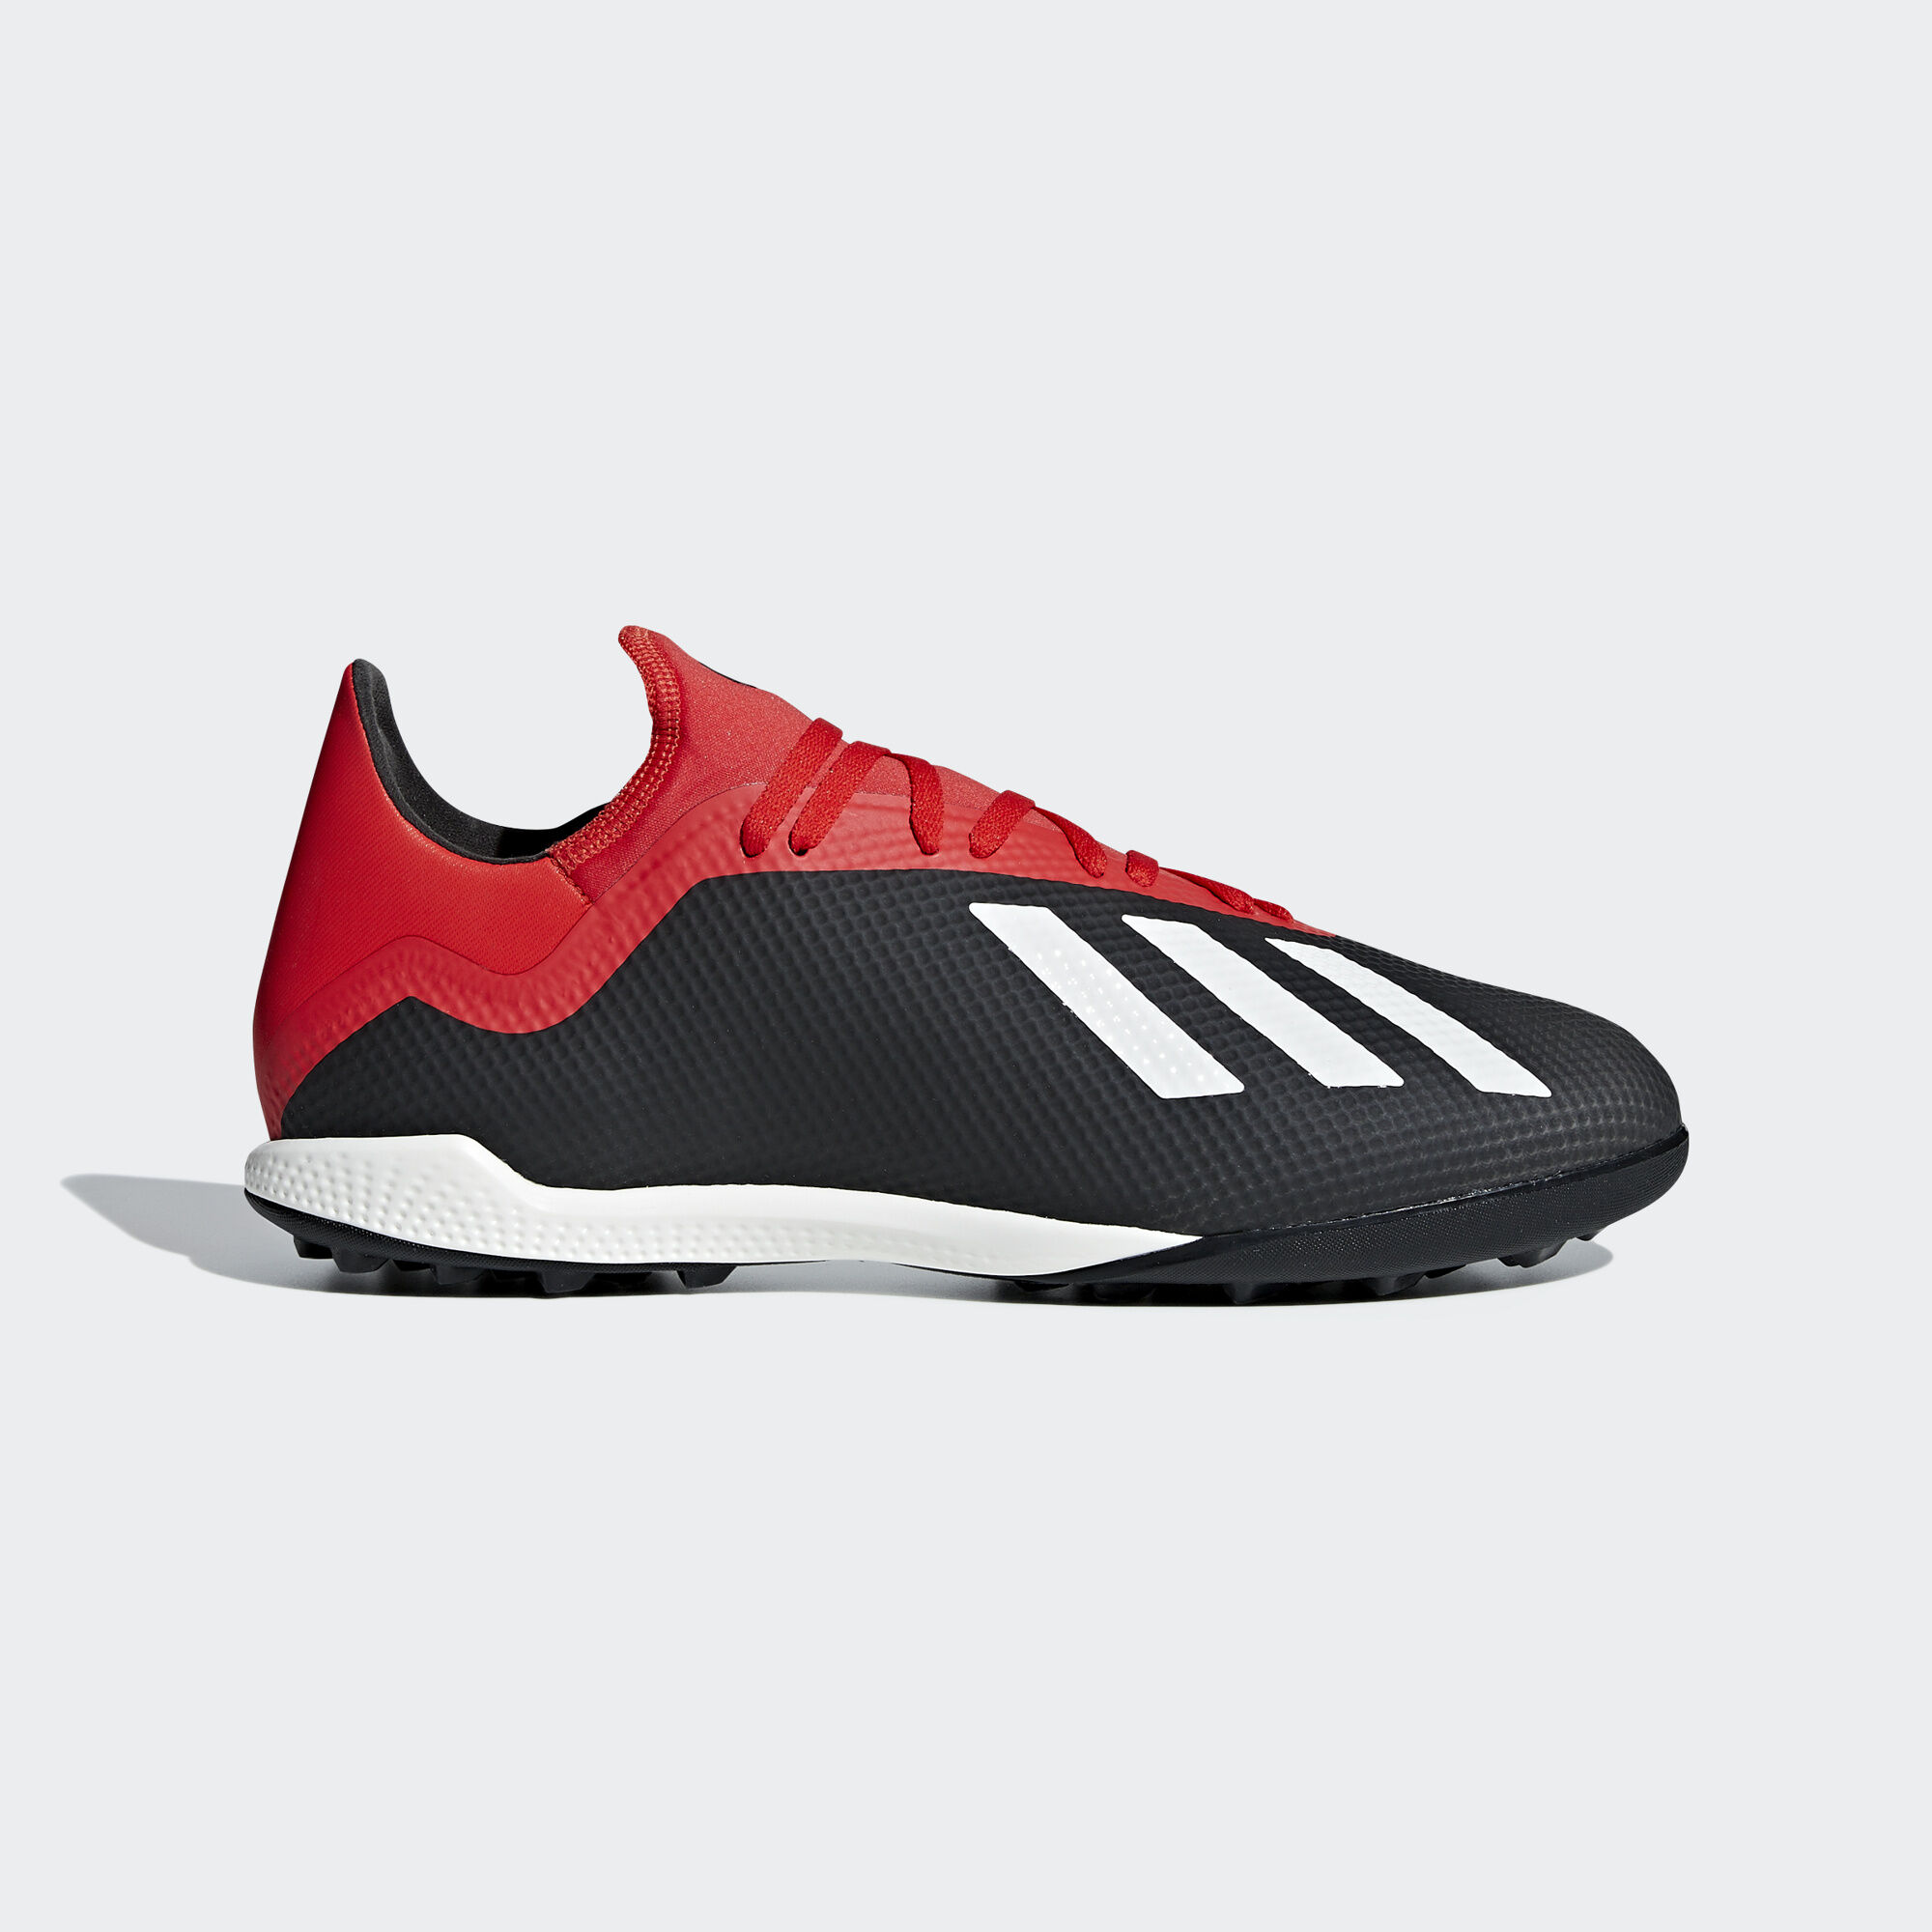 adidas - X Tango 18.3 Turf Boots Core Black   Off White   Active Red BB9398 2707cee001009